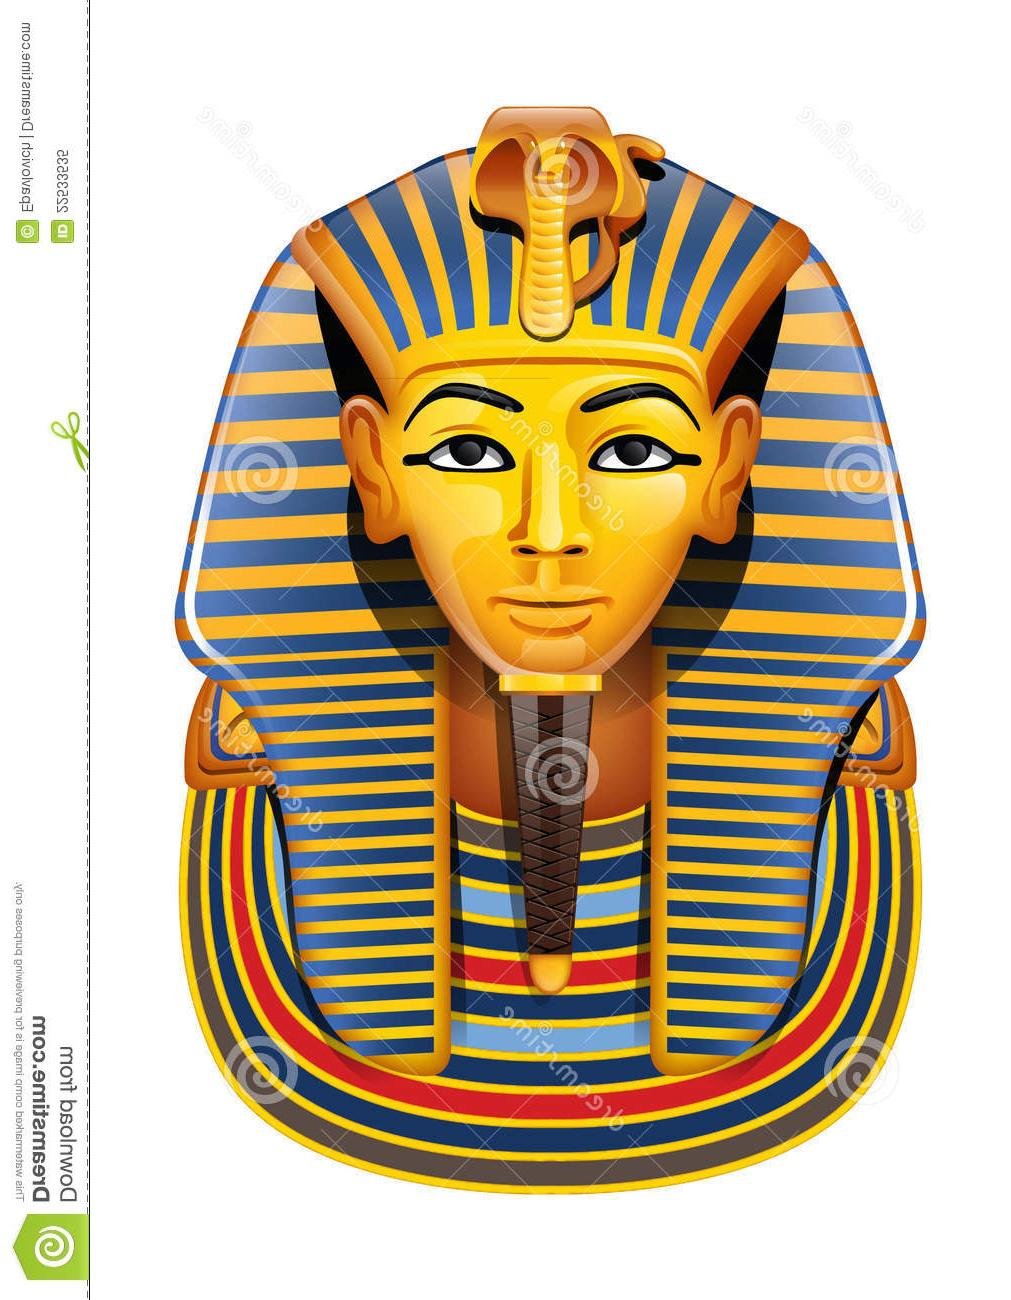 Kingtut clipart vector black and white Best HD King Tut Vector Pictures » Free Vector Art, Images, Graphics ... vector black and white